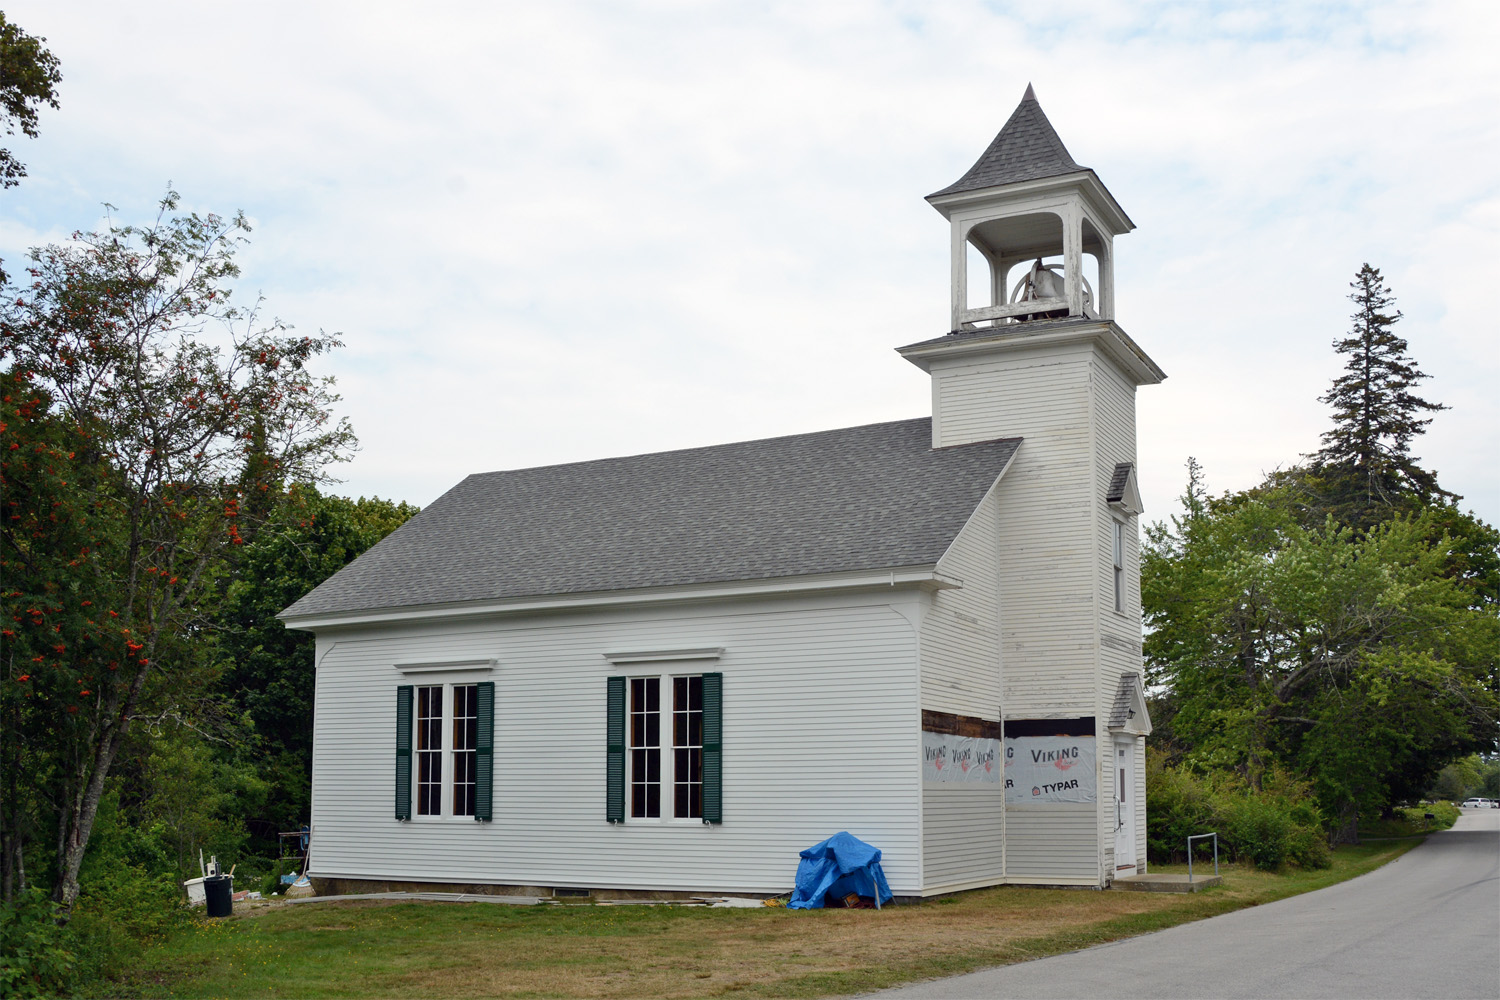 Extant church where Wilford Woodruff, president of The Church of Jesus Christ of Latter-day Saints from 1889 to 1898, preached in North Haven, Maine.